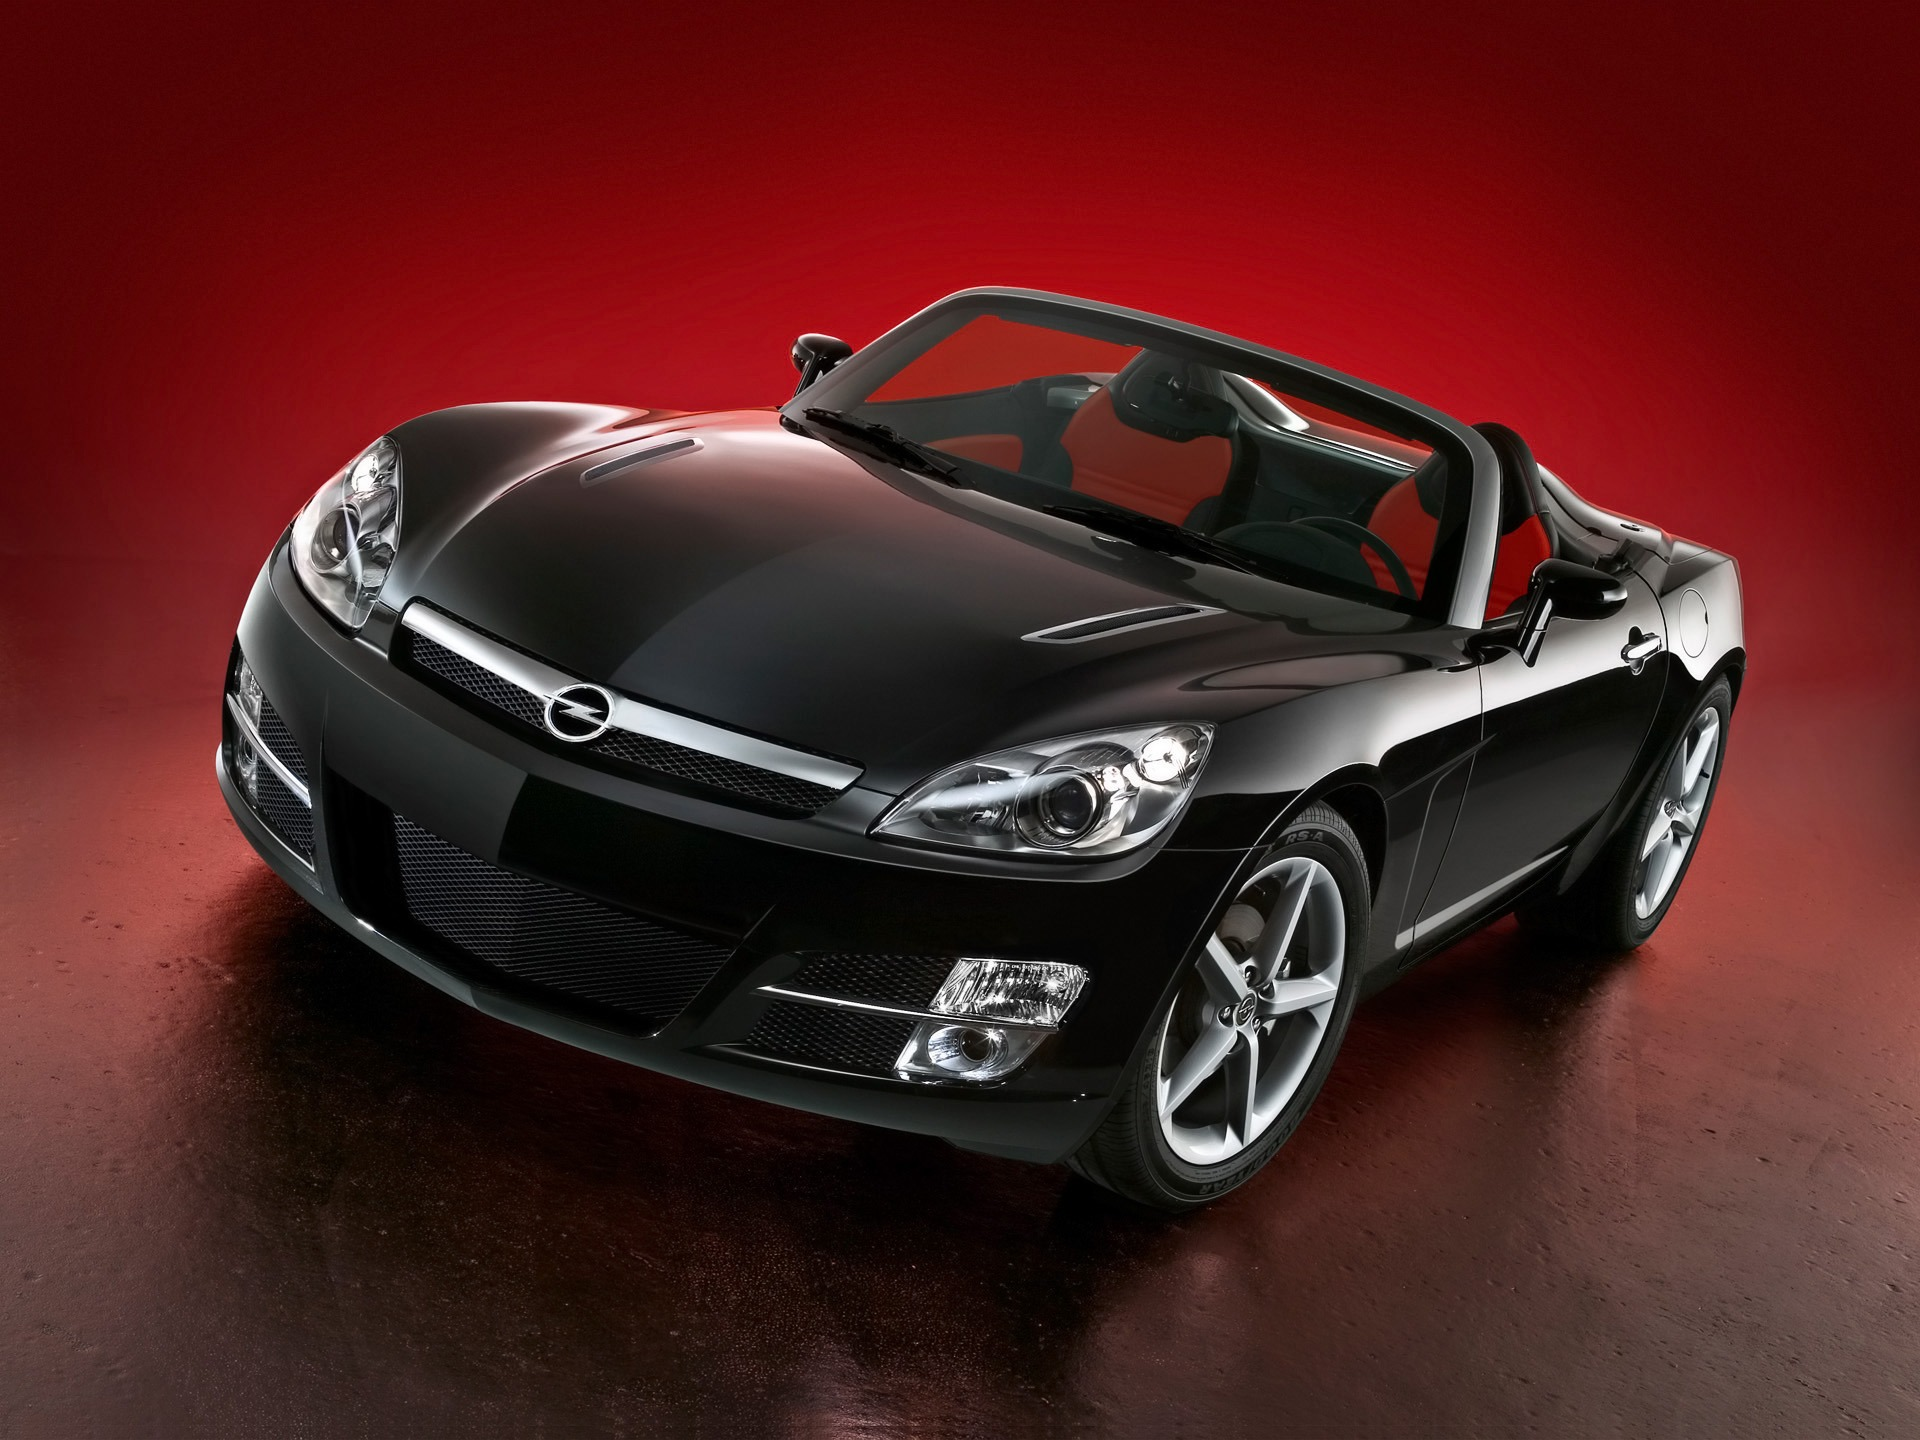 opel gt cabrio wallpaper opel cars 66 wallpapers wallpapers for desktop. Black Bedroom Furniture Sets. Home Design Ideas